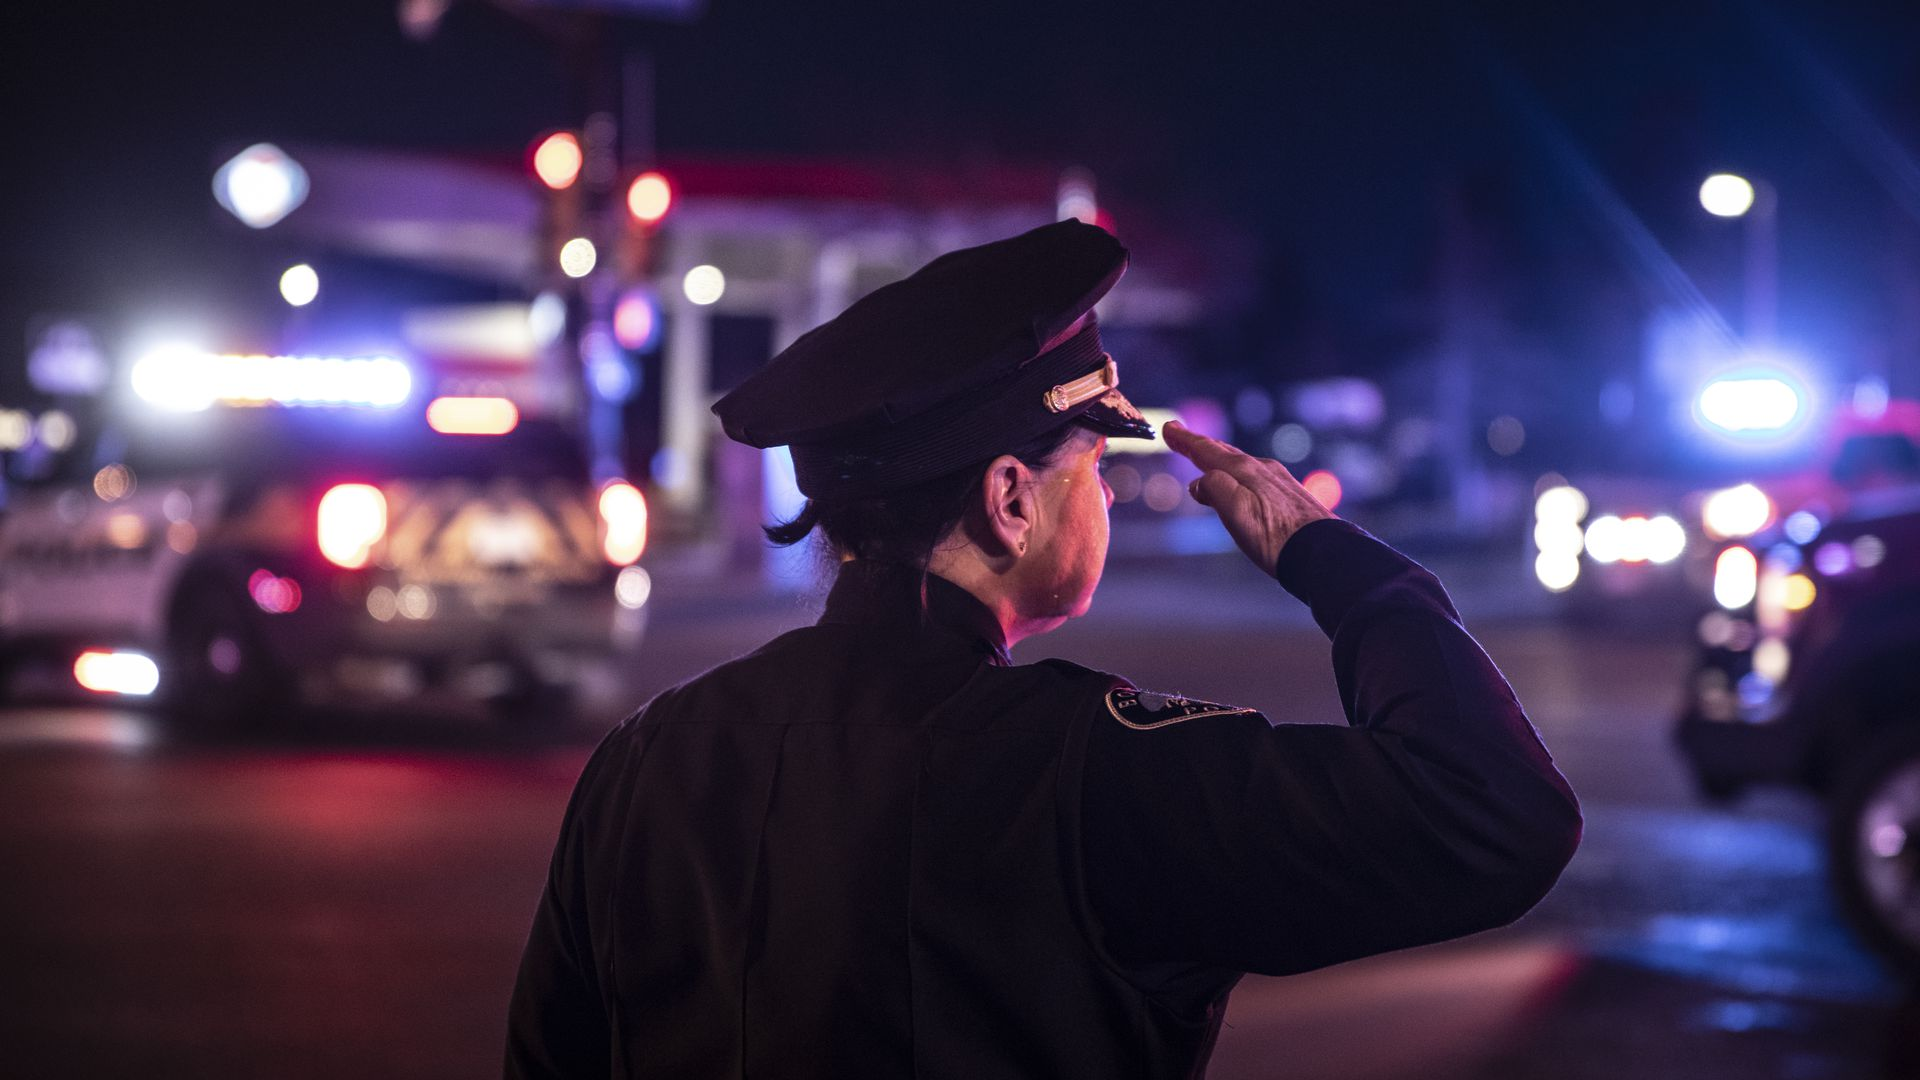 A photo of a police officer doing a salute.